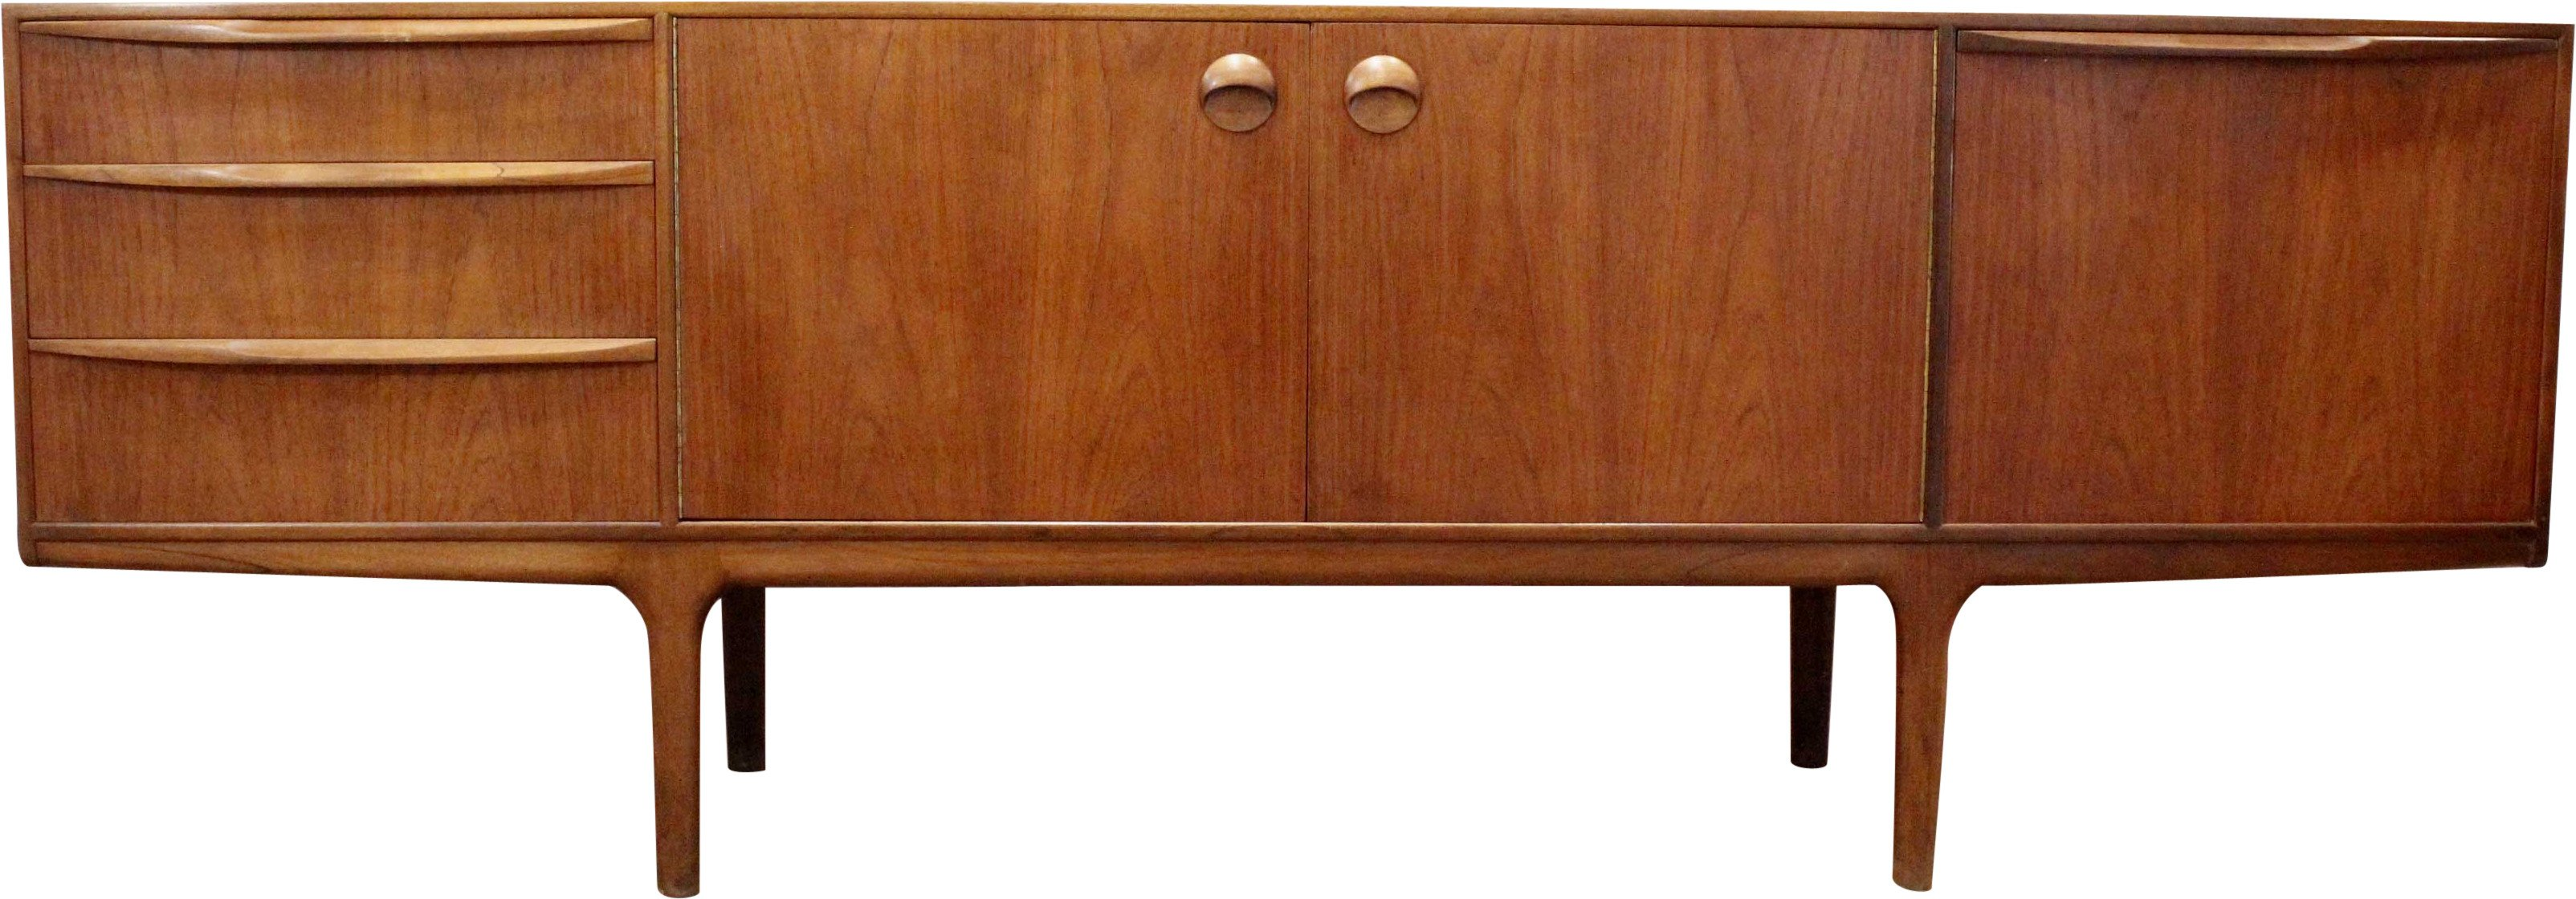 Sideboard by T. Robertson, McIntosh, 1960s